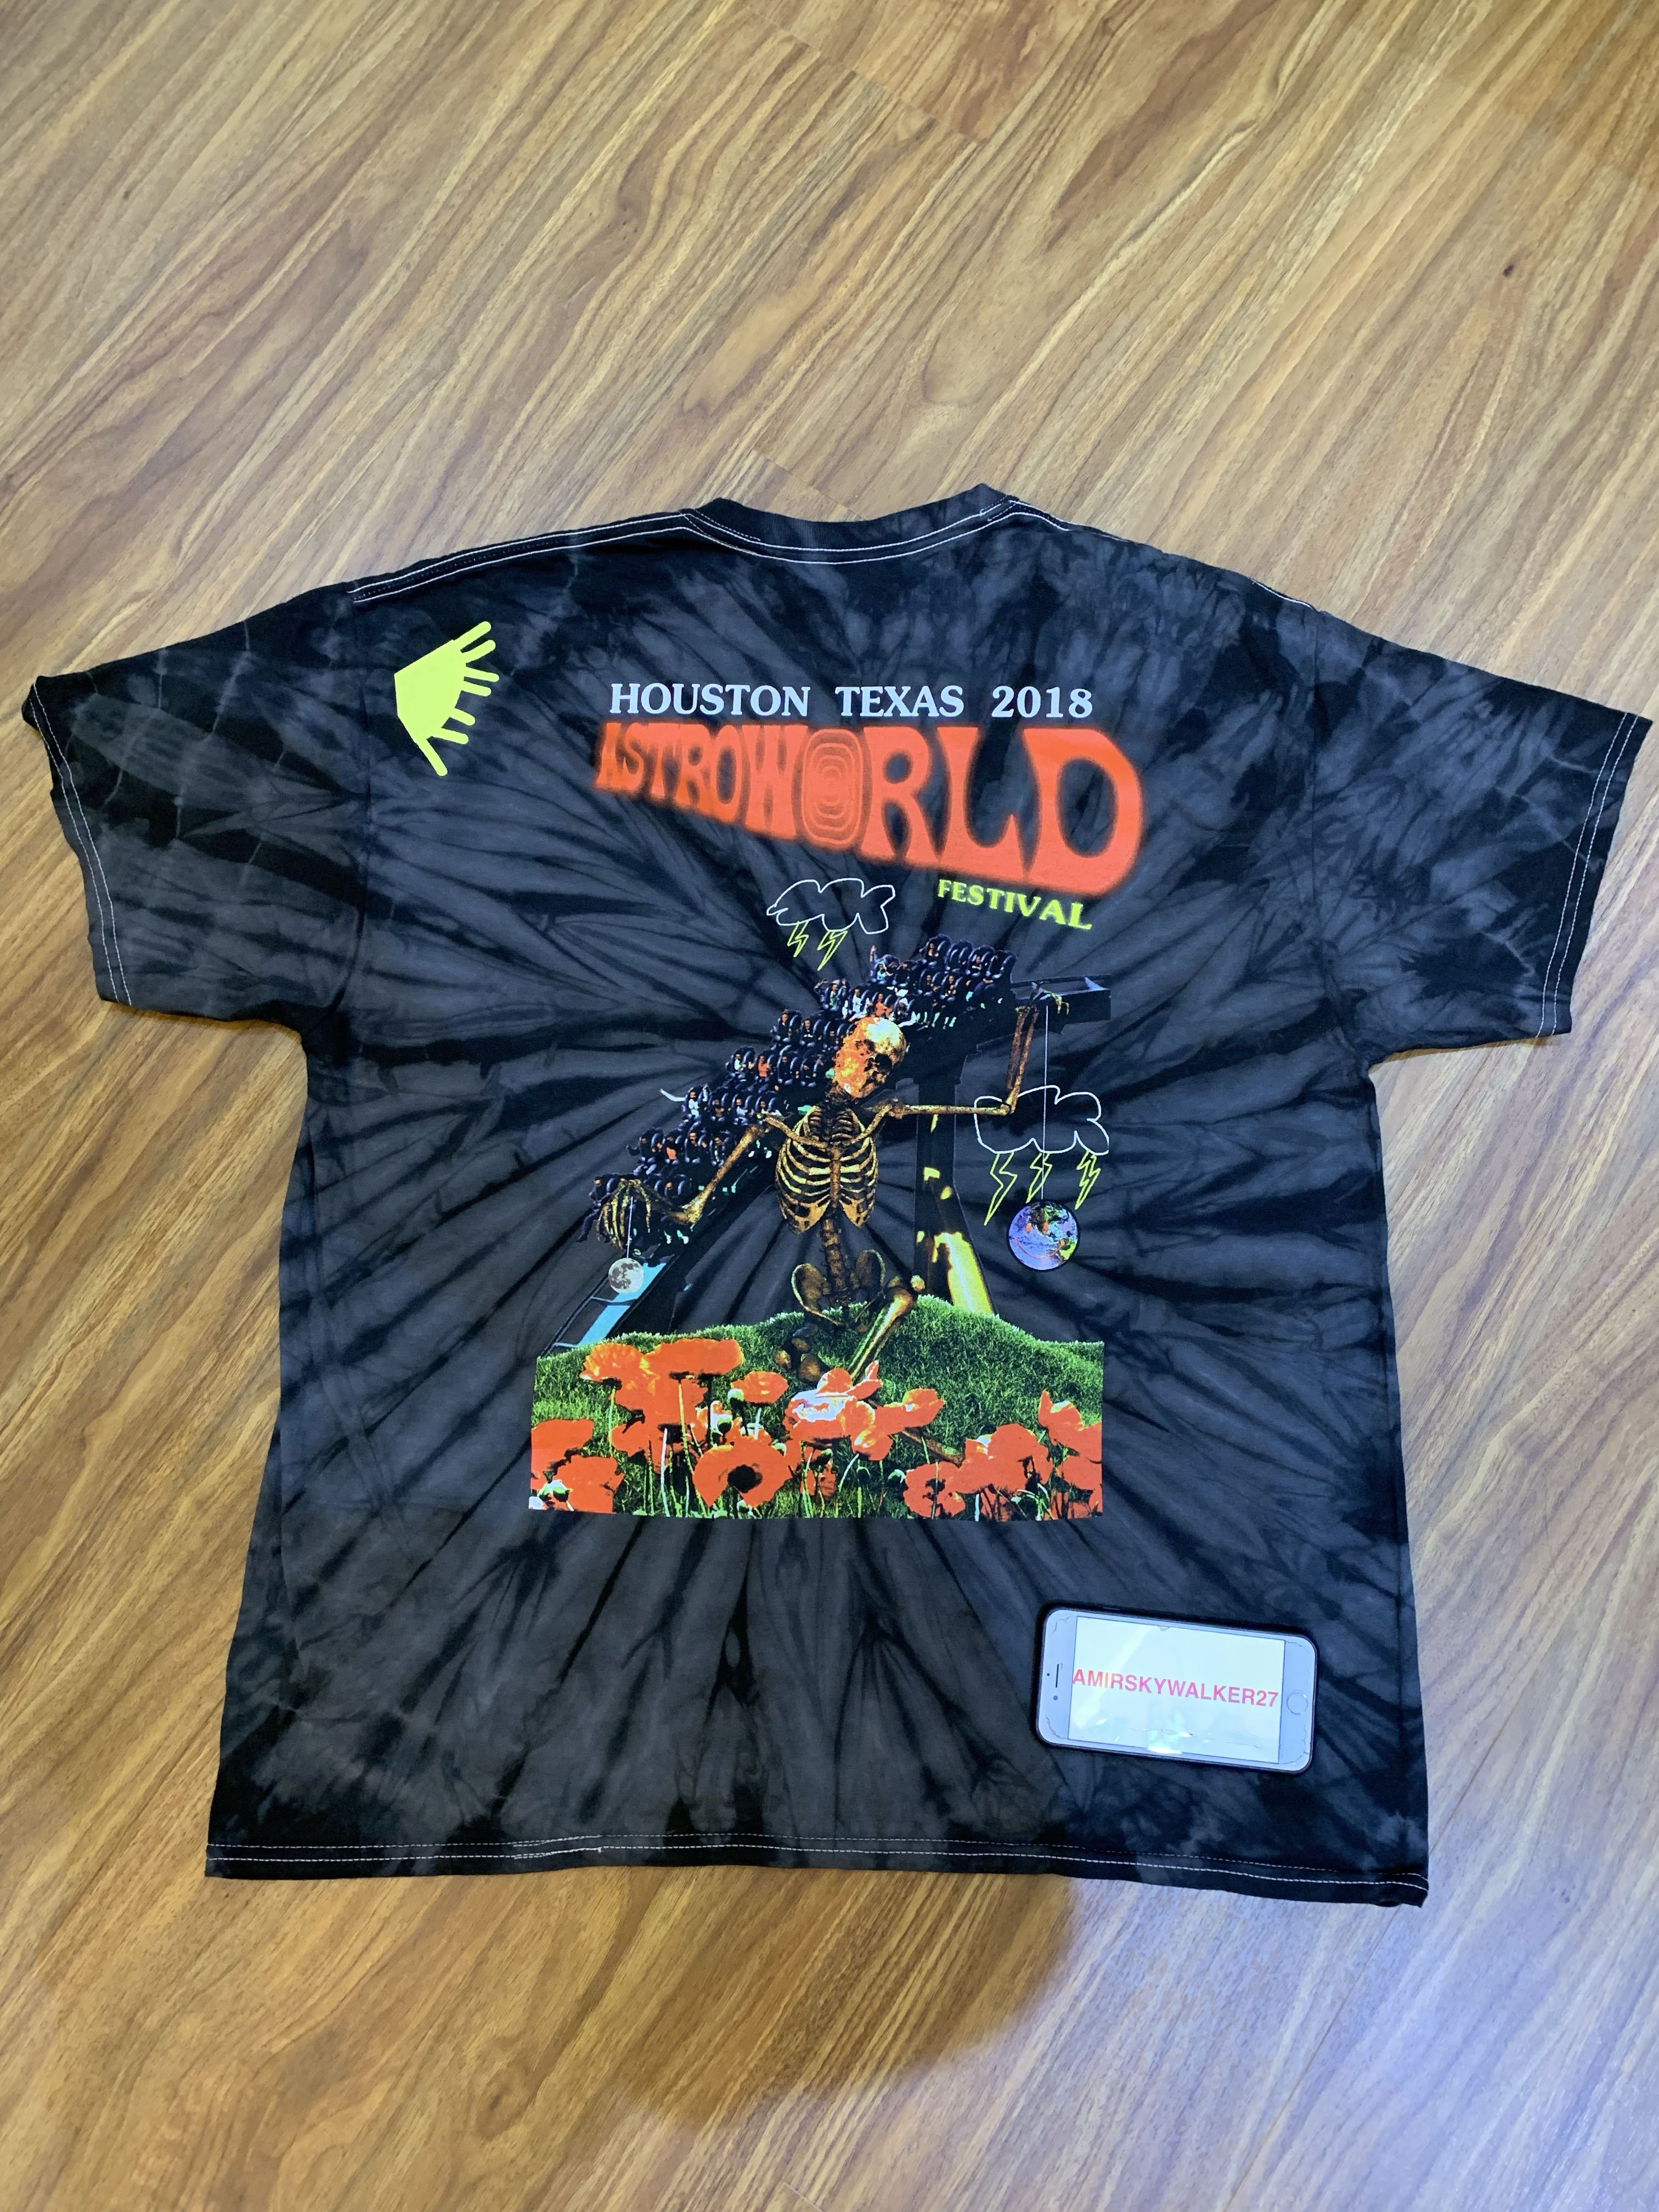 0f2af56b Travis Scott Astroworld Festival Tie Dye T-Shirt XL, Men's Fashion,  Clothes, Tops on Carousell